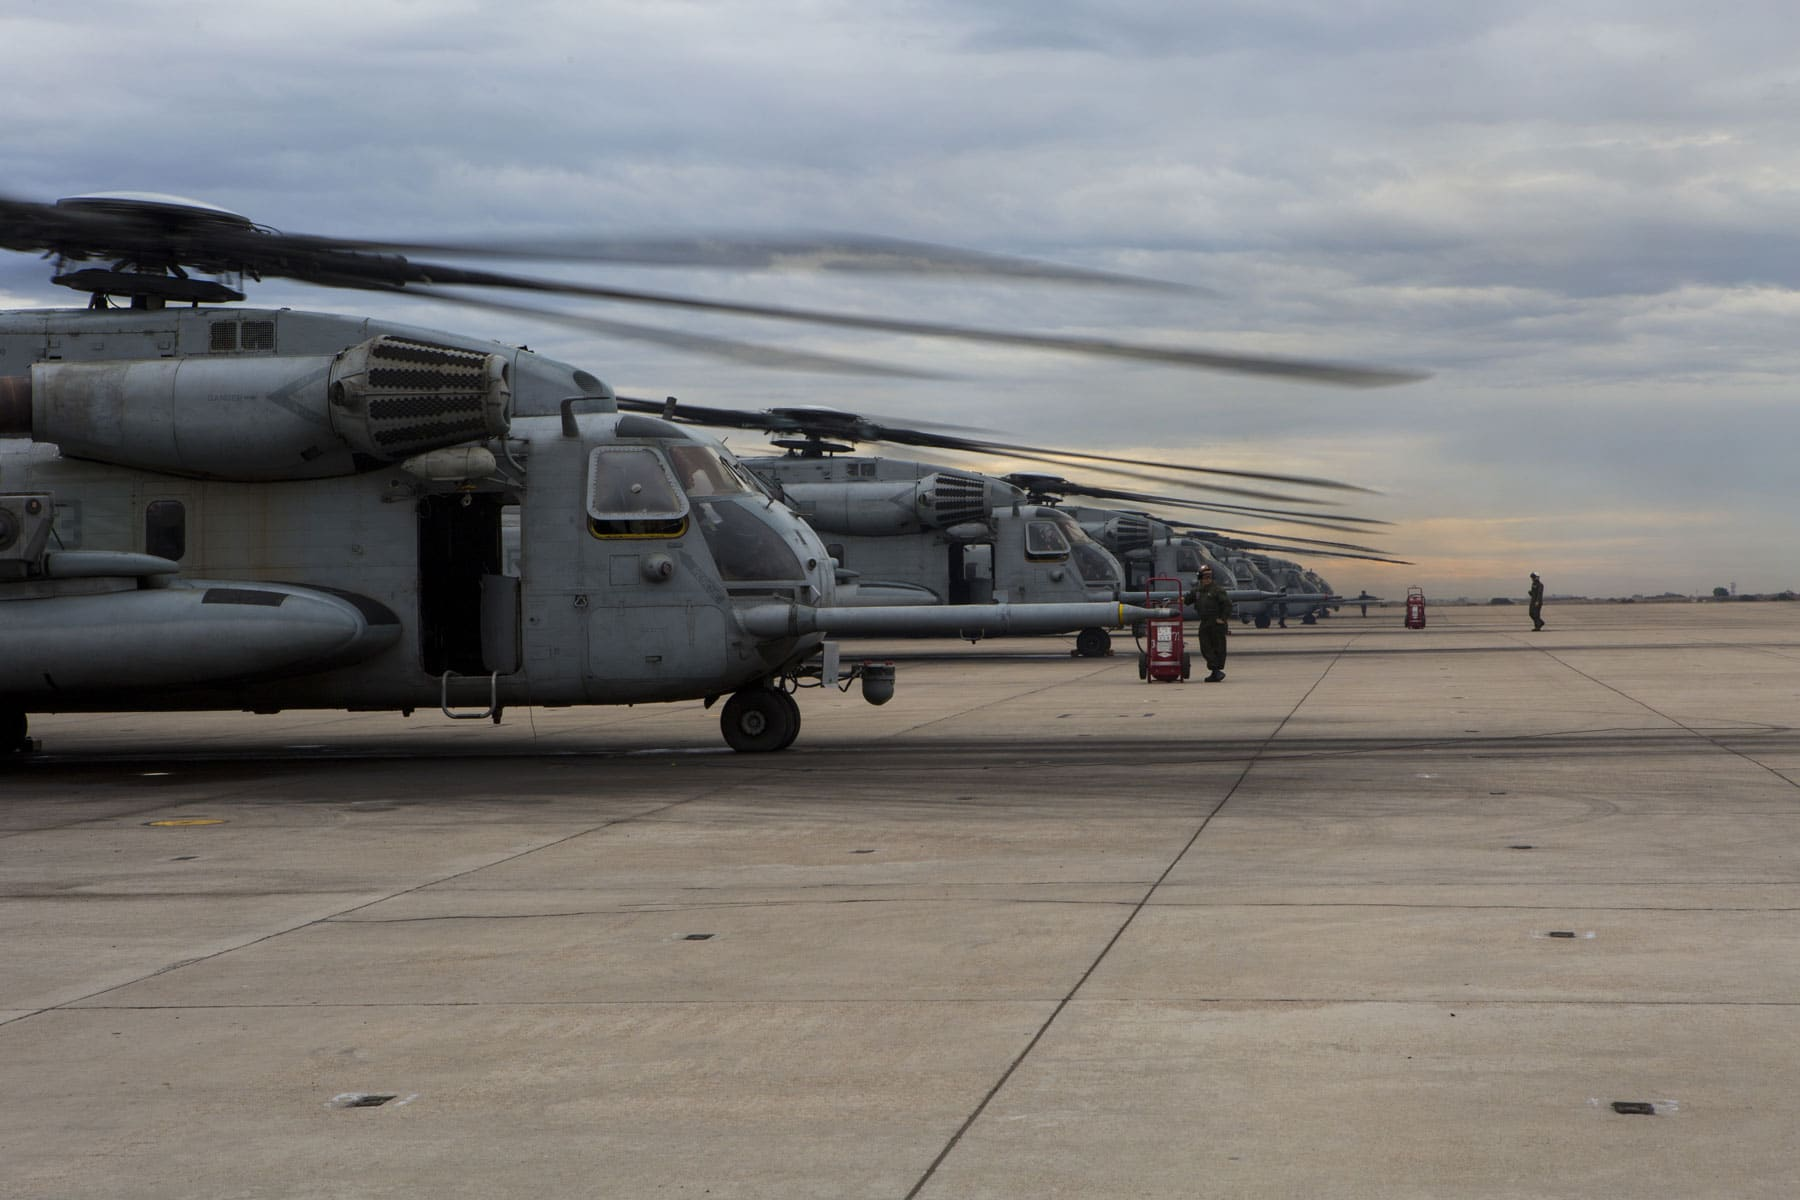 Four aircraft returned to HMH-361, and the other four aircraft attached to Marine Medium Tiltrotor Squadron (VMM) 166 for an upcoming deployment with the 13th Marine Expeditionary Unit.